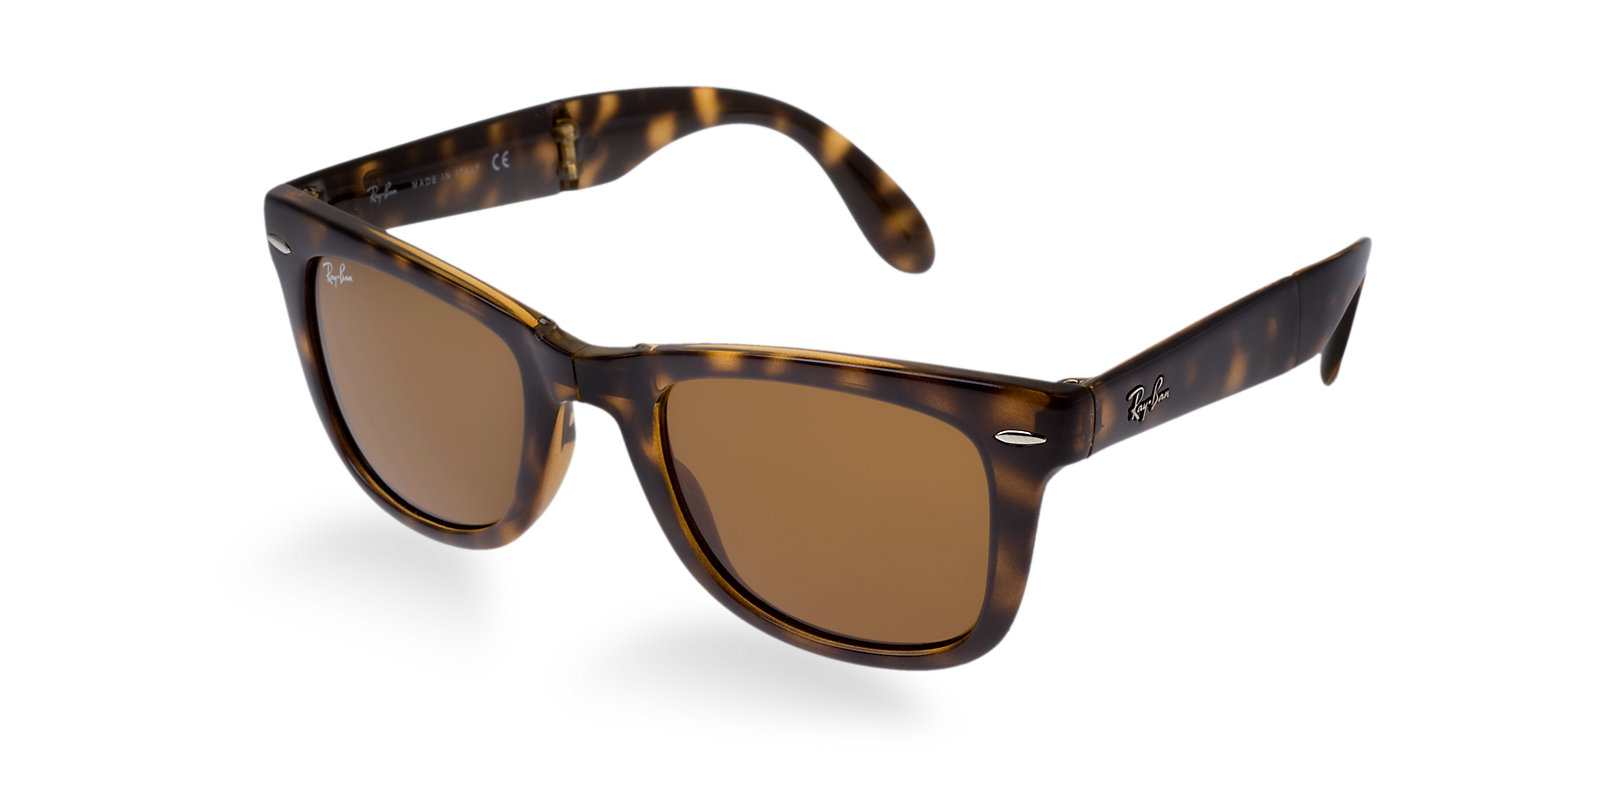 9cfc8b6d594 Previous  Next. Previous  Next. RAY-BAN RB4105 710 TORTOISE FOLDING WAYFARER  SUNGLASSES